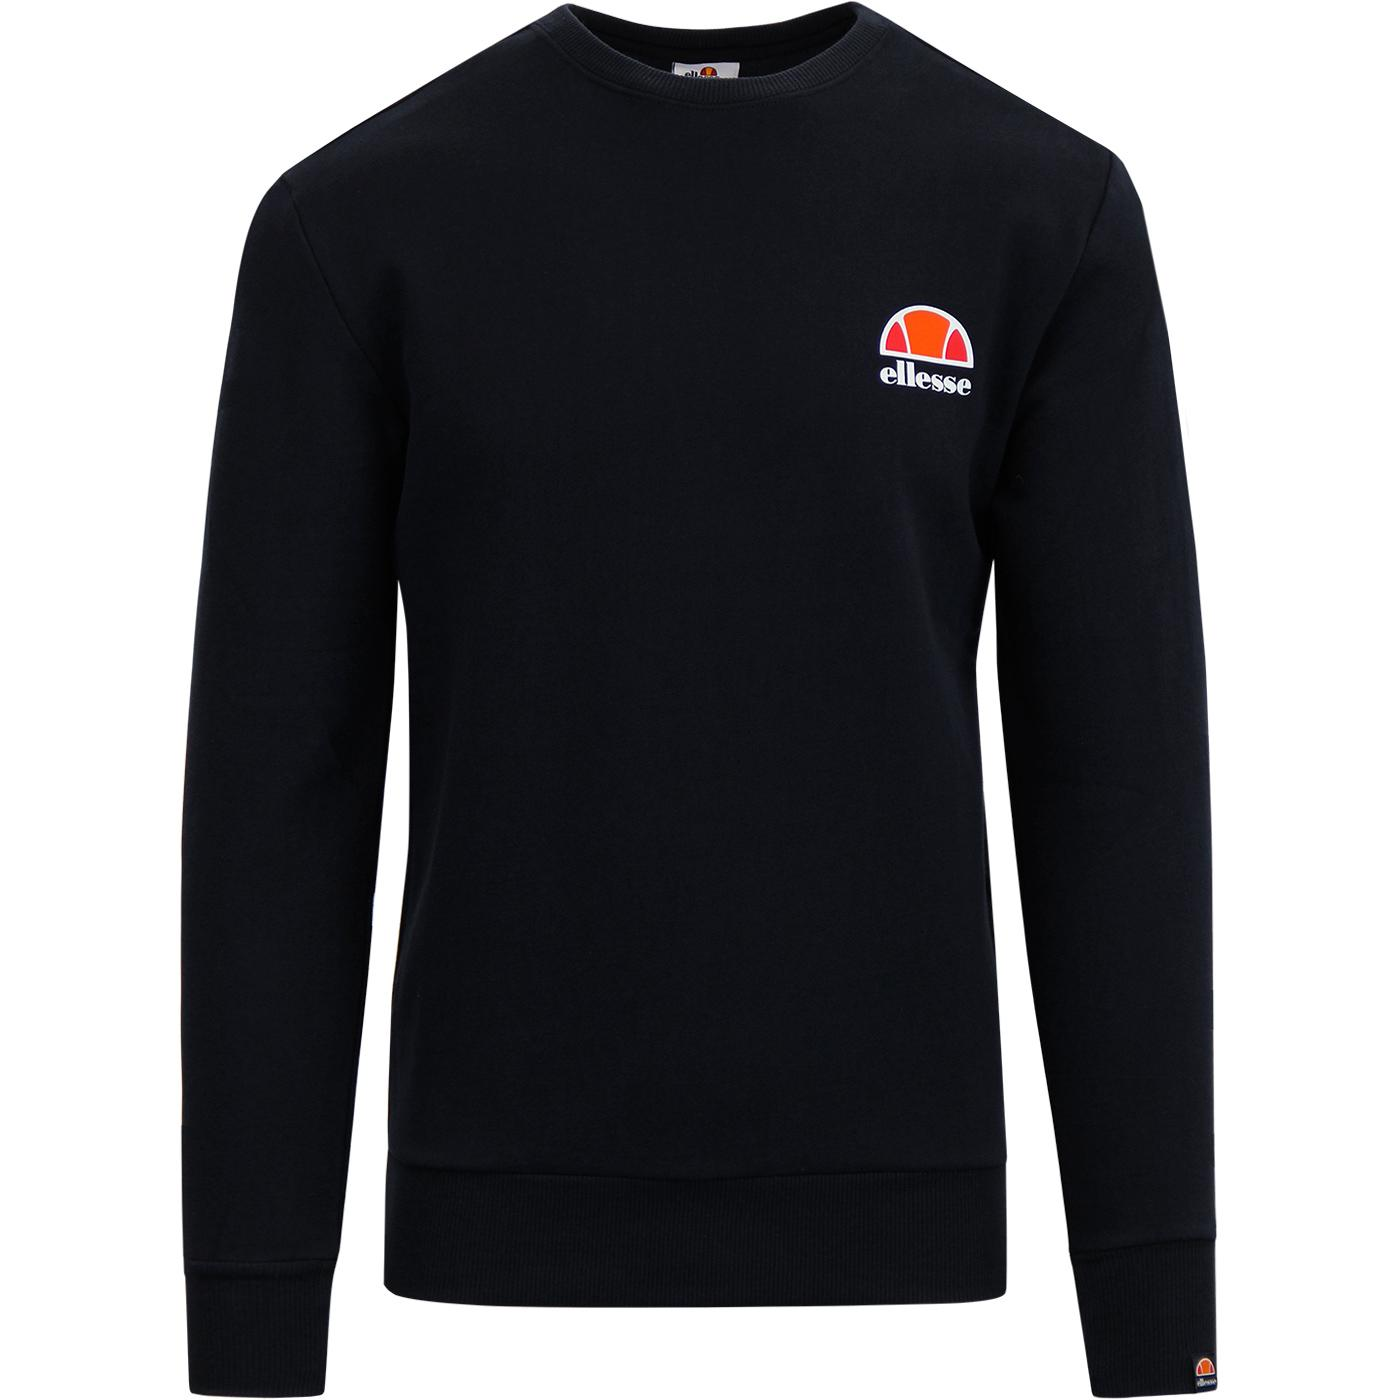 Diveria ELLESSE Men's Retro Basic Sweatshirt B